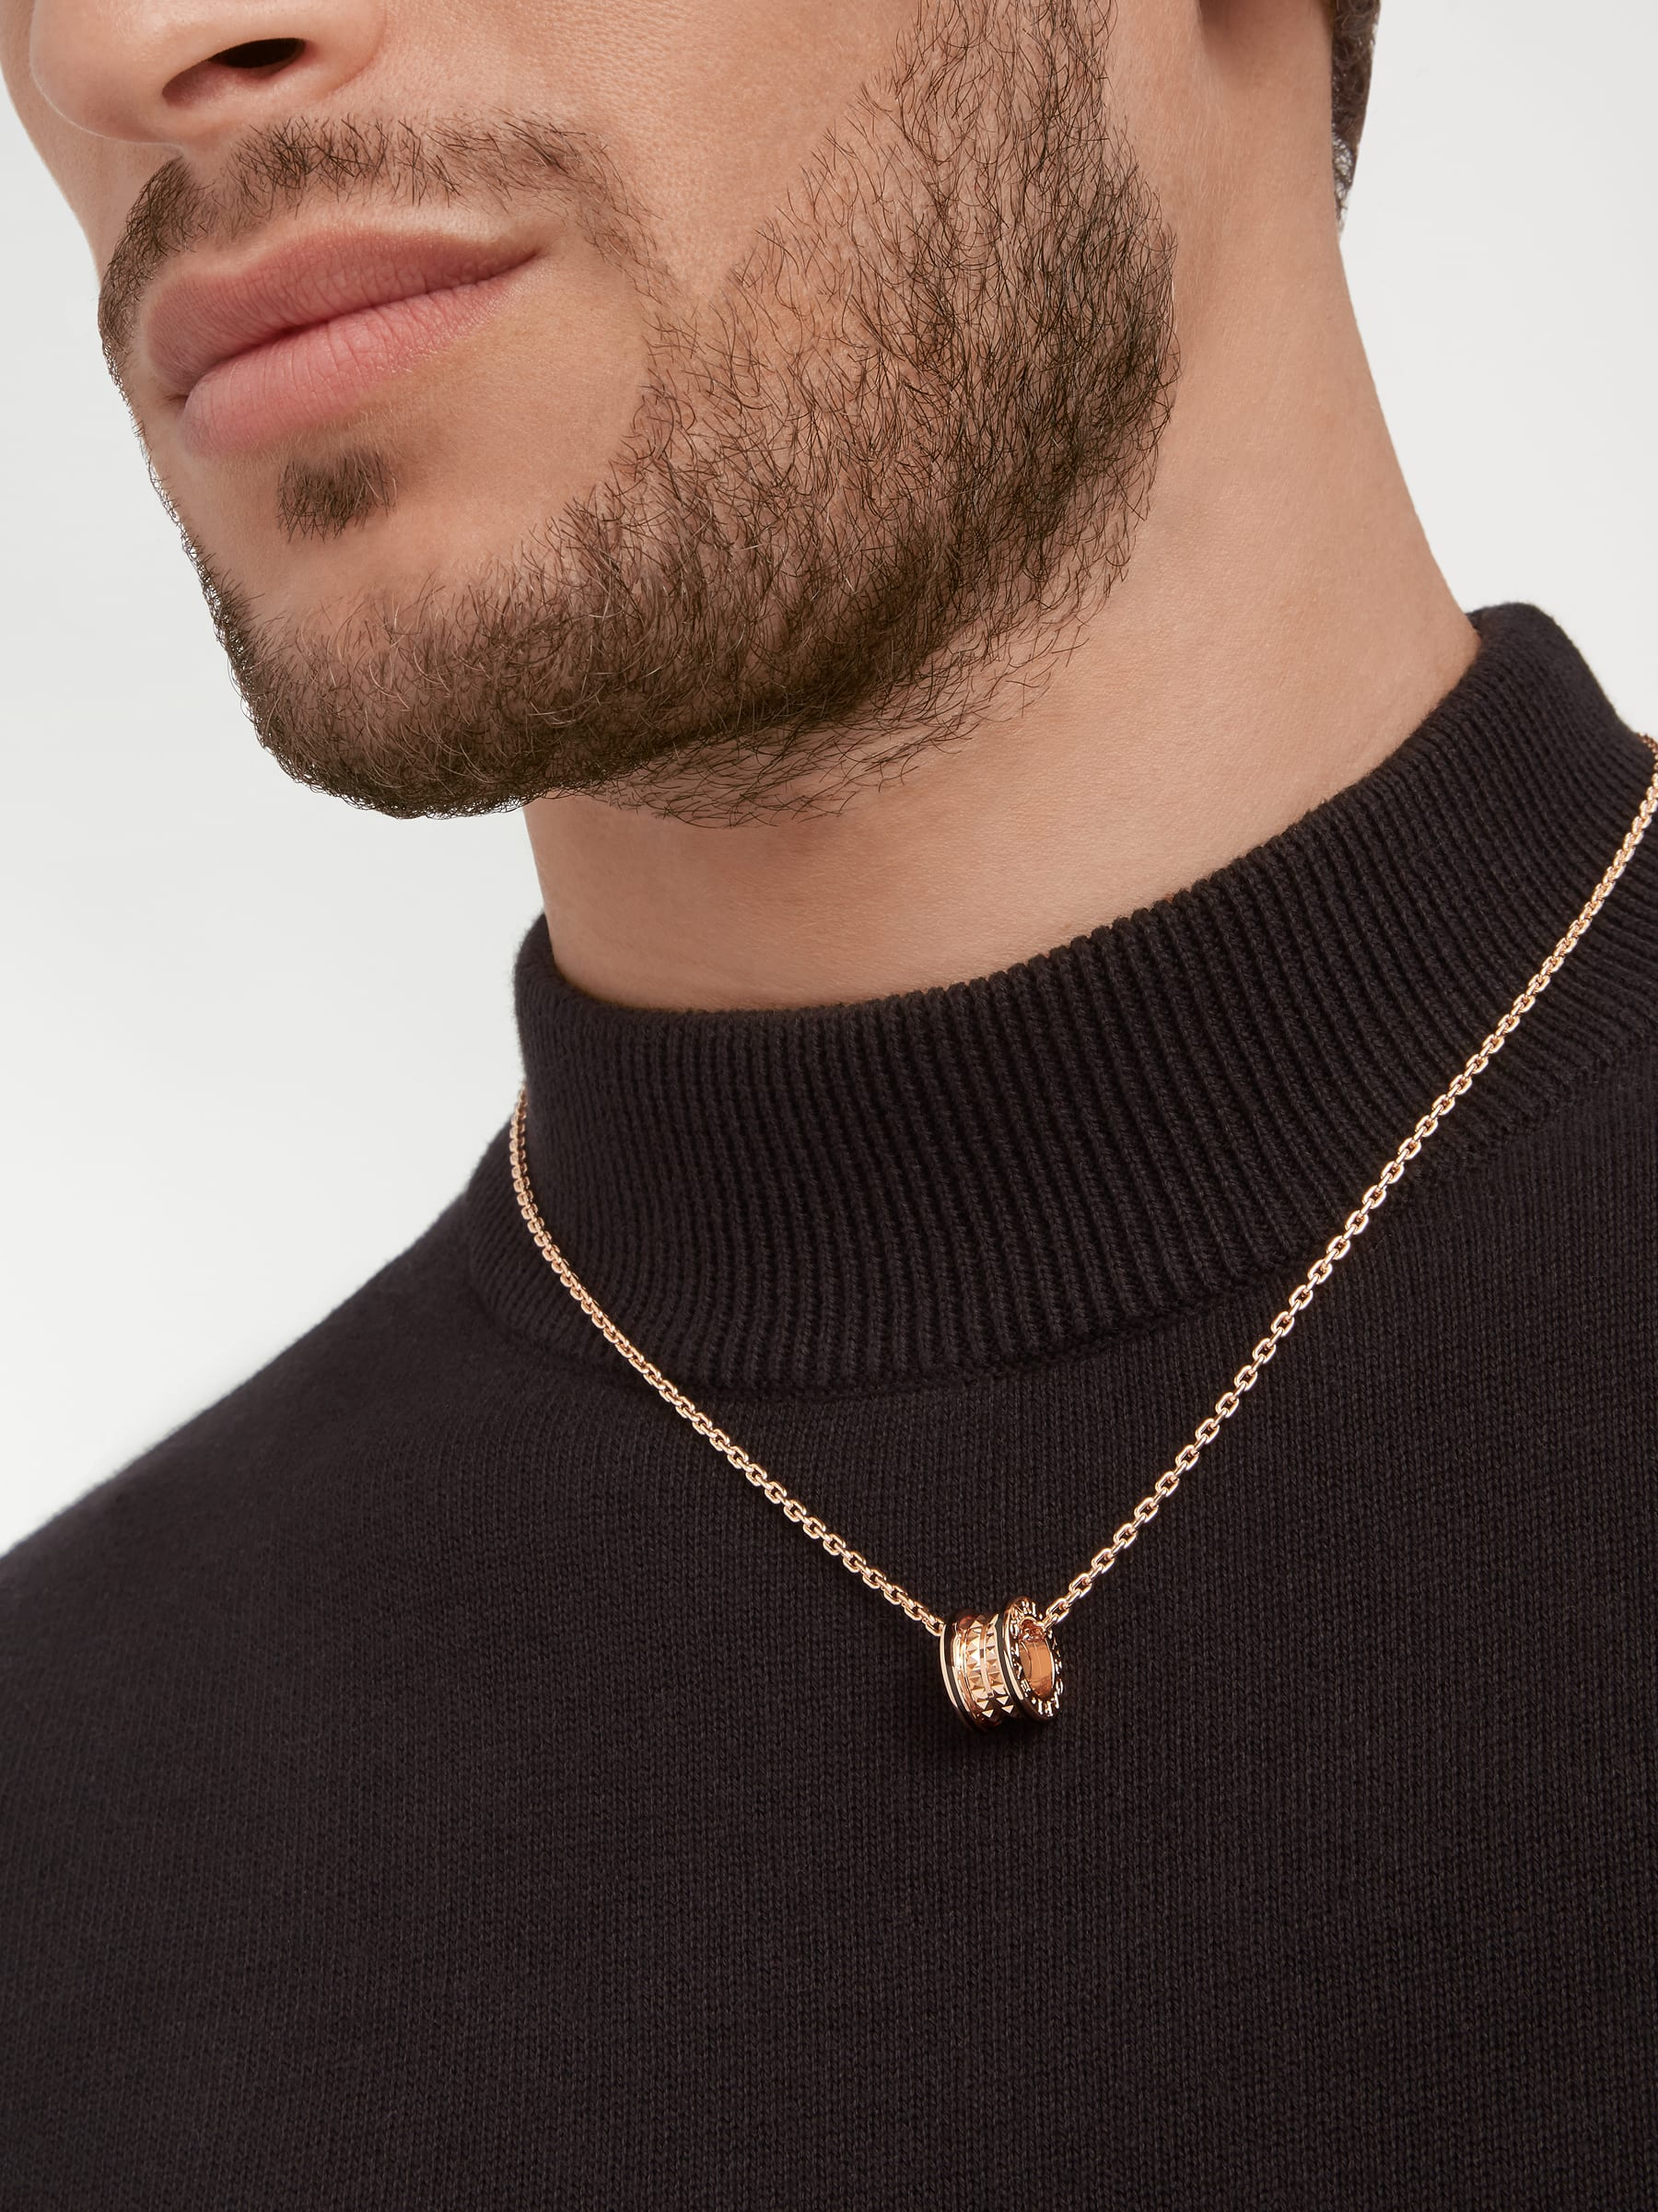 B.zero1 Rock pendant necklace in 18 kt rose gold with studs and black ceramic inserts 358350 image 6